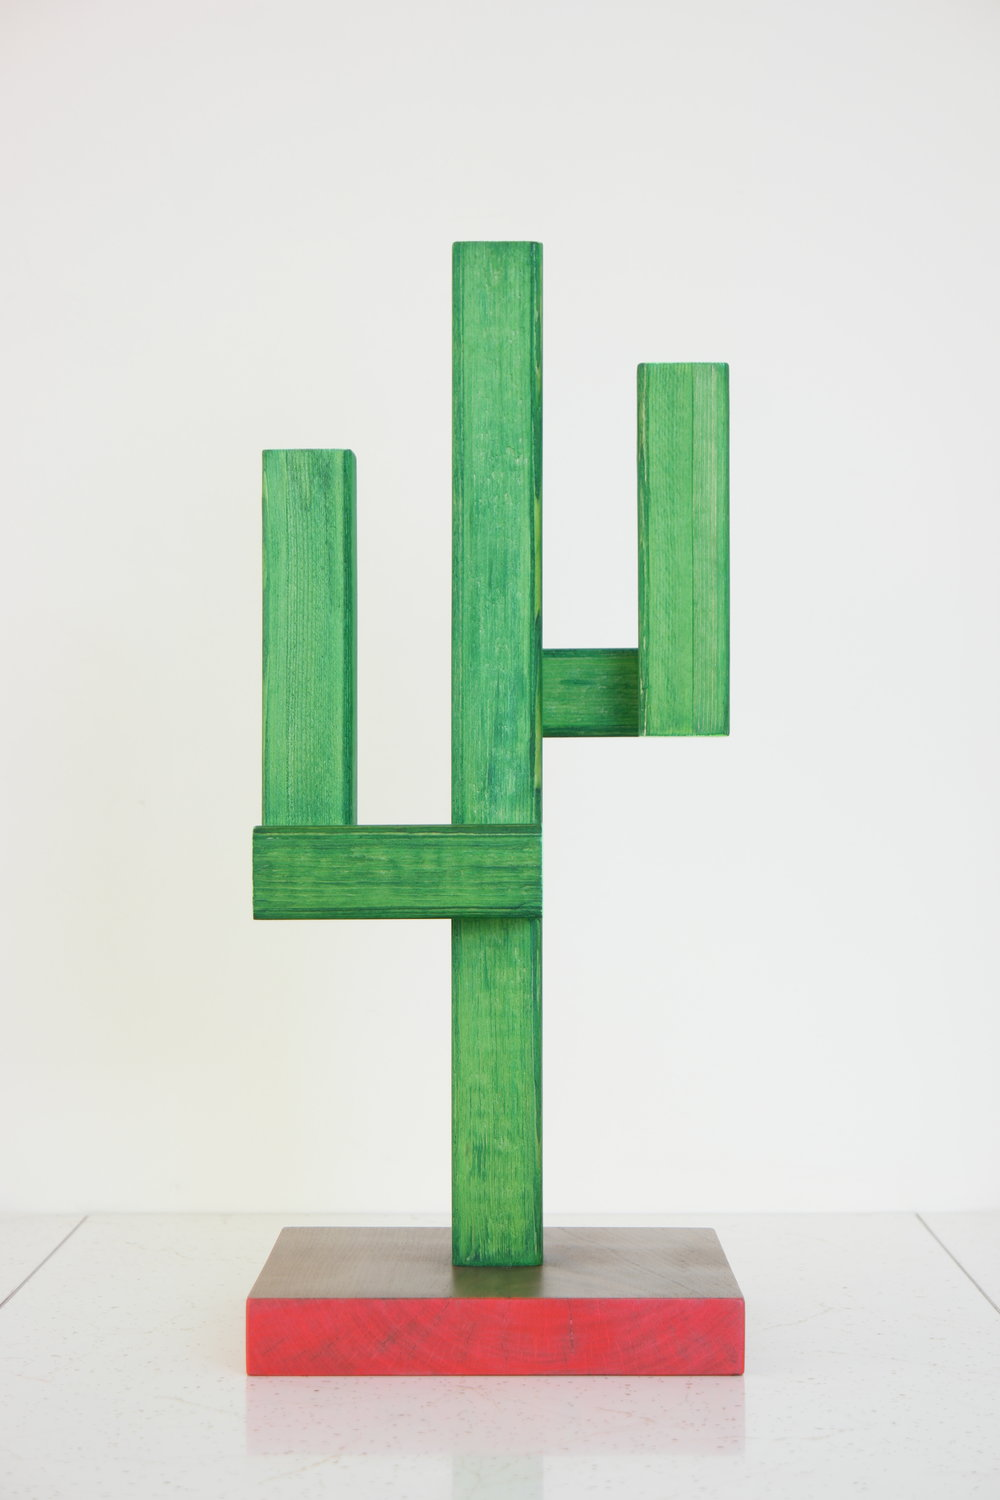 Cactus No.1   2018    wood, dye, acrylic, lacquer    7.5 x 7.5 x 17.75 inches    see store tab for price